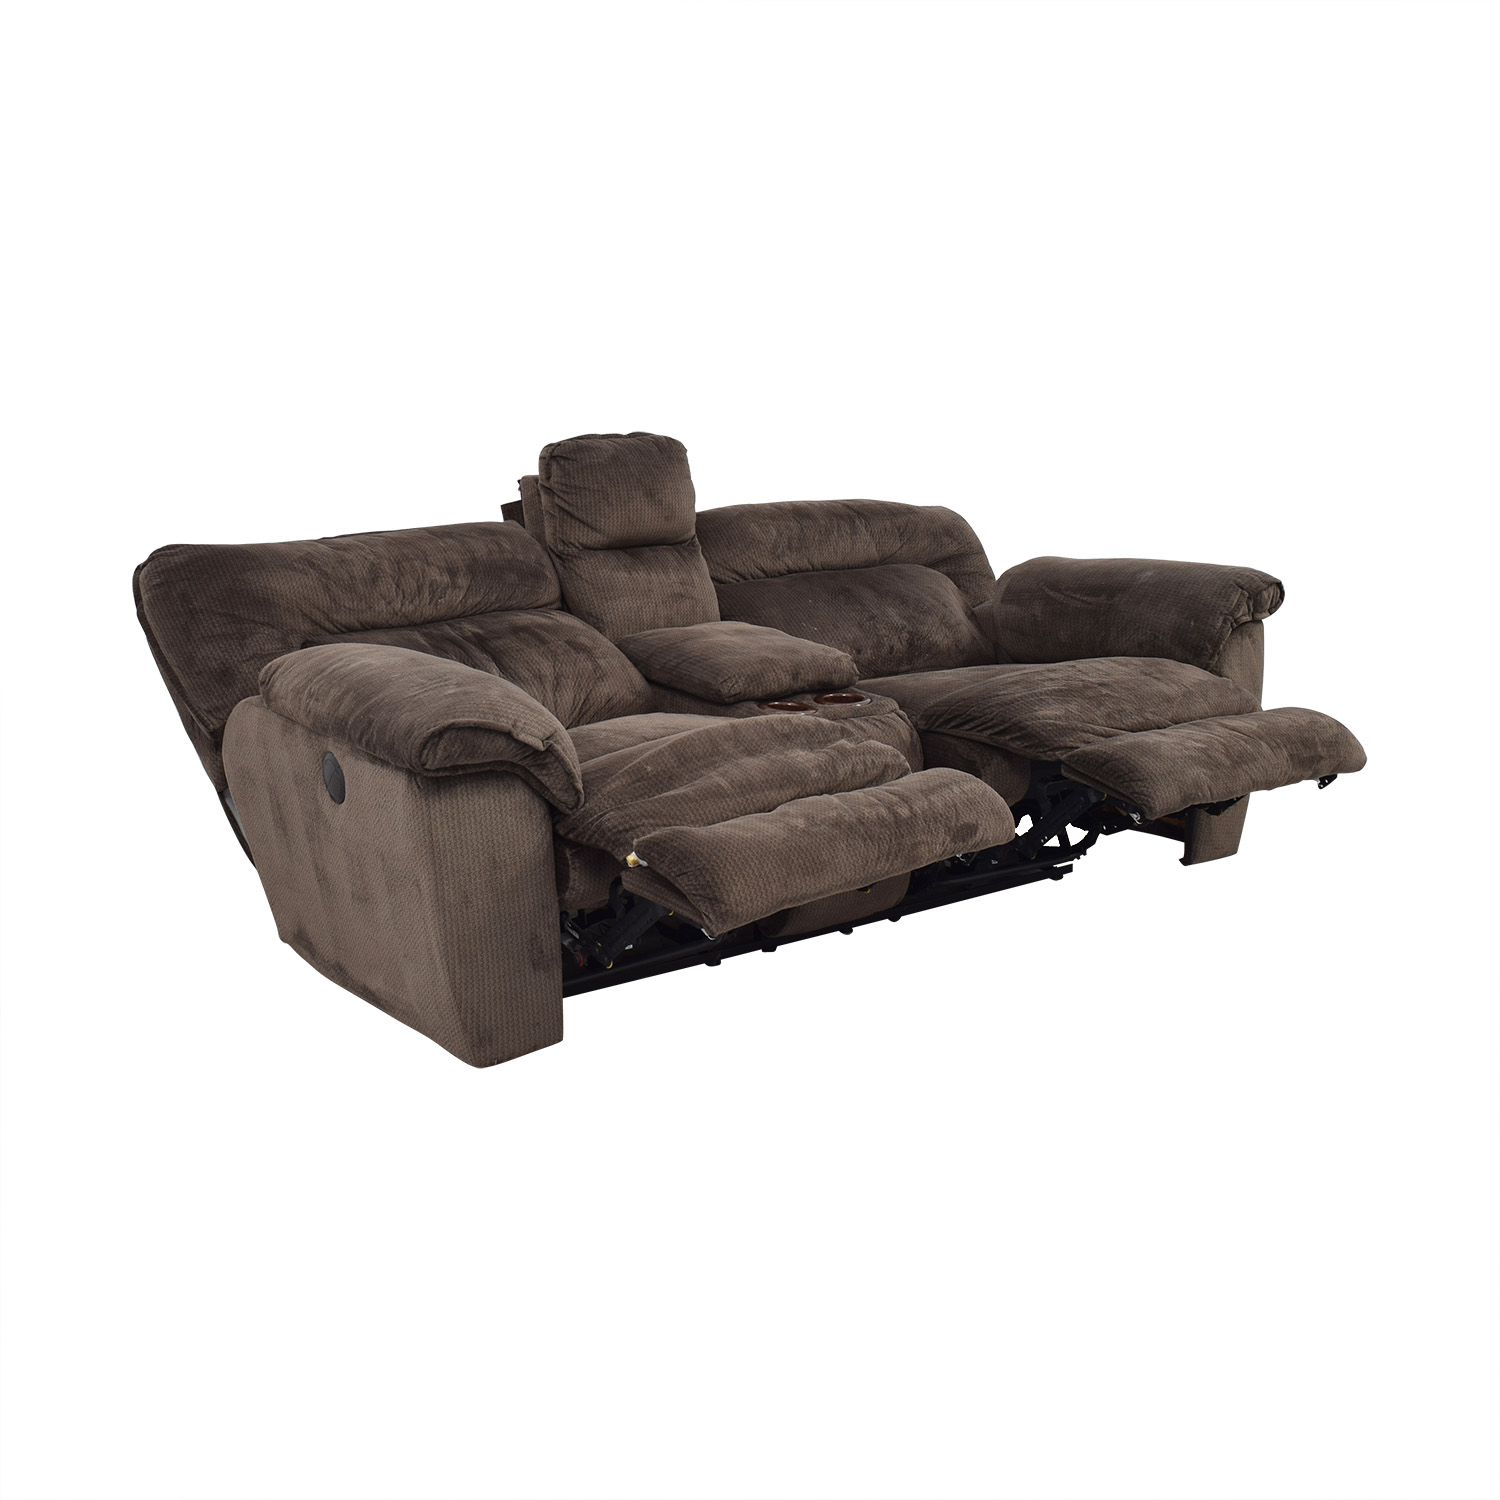 Two Seat Recliner Loveseat used